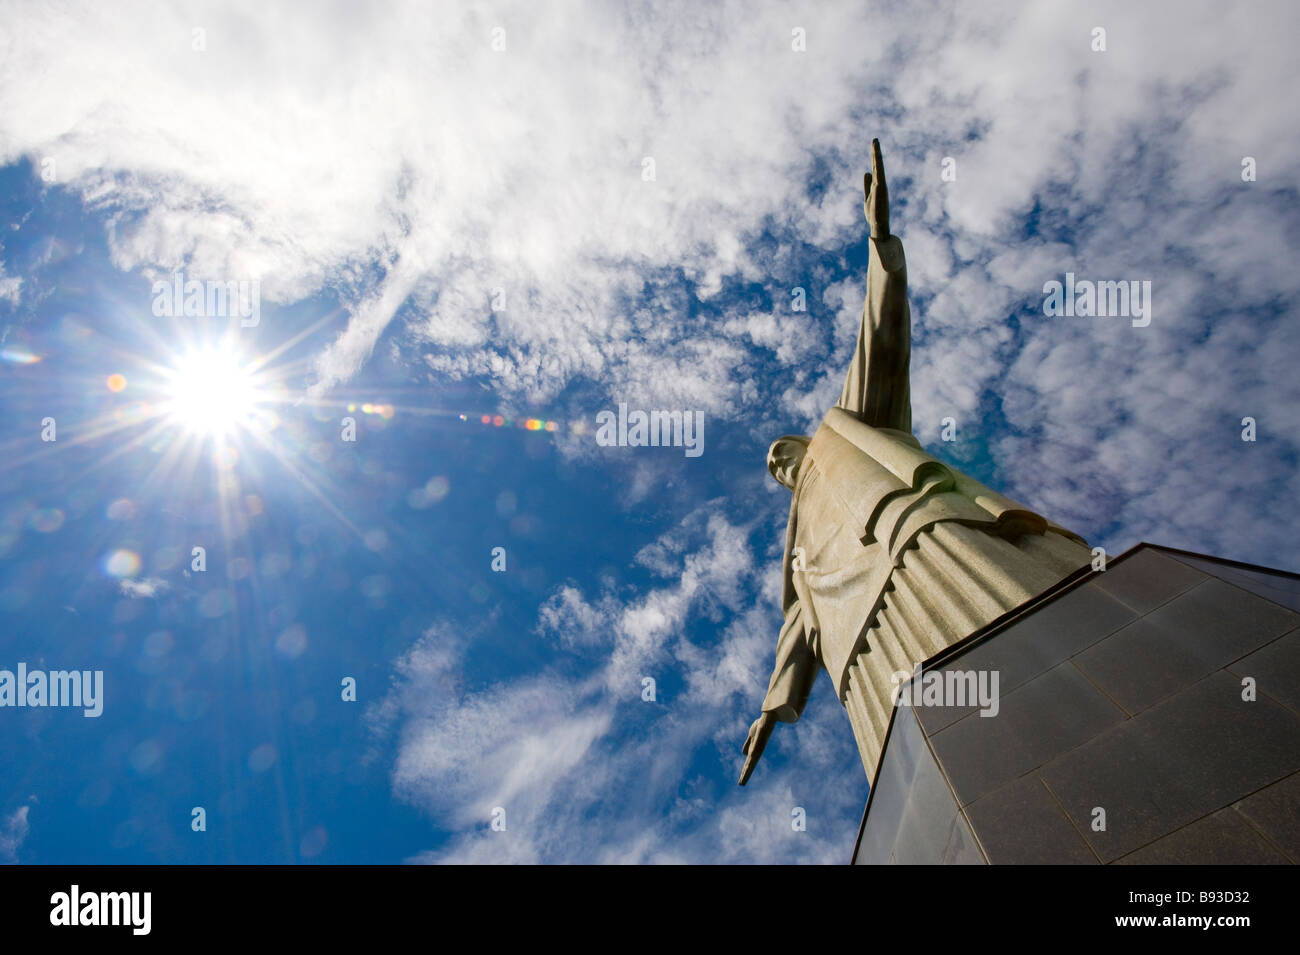 CHRIST THE REDEEMER STATUE ON CORCOVADO HILL RIO DE JANEIRO AS SUNLIGHT FLARES ON OUTSTRETCHED ARMS Stock Photo